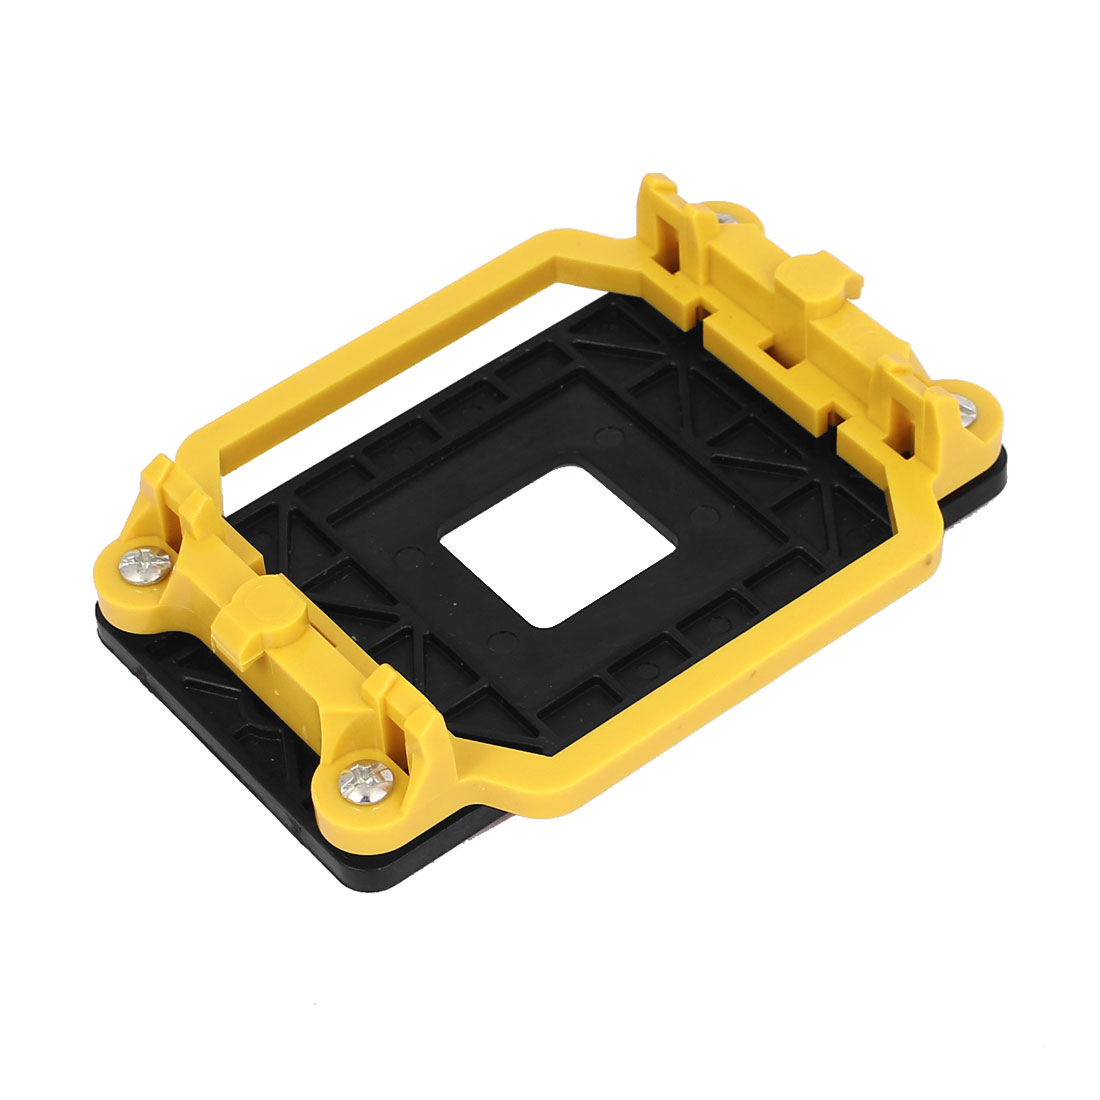 CPU Retention Bracket Base Yellow for AMD Socket AM2 940